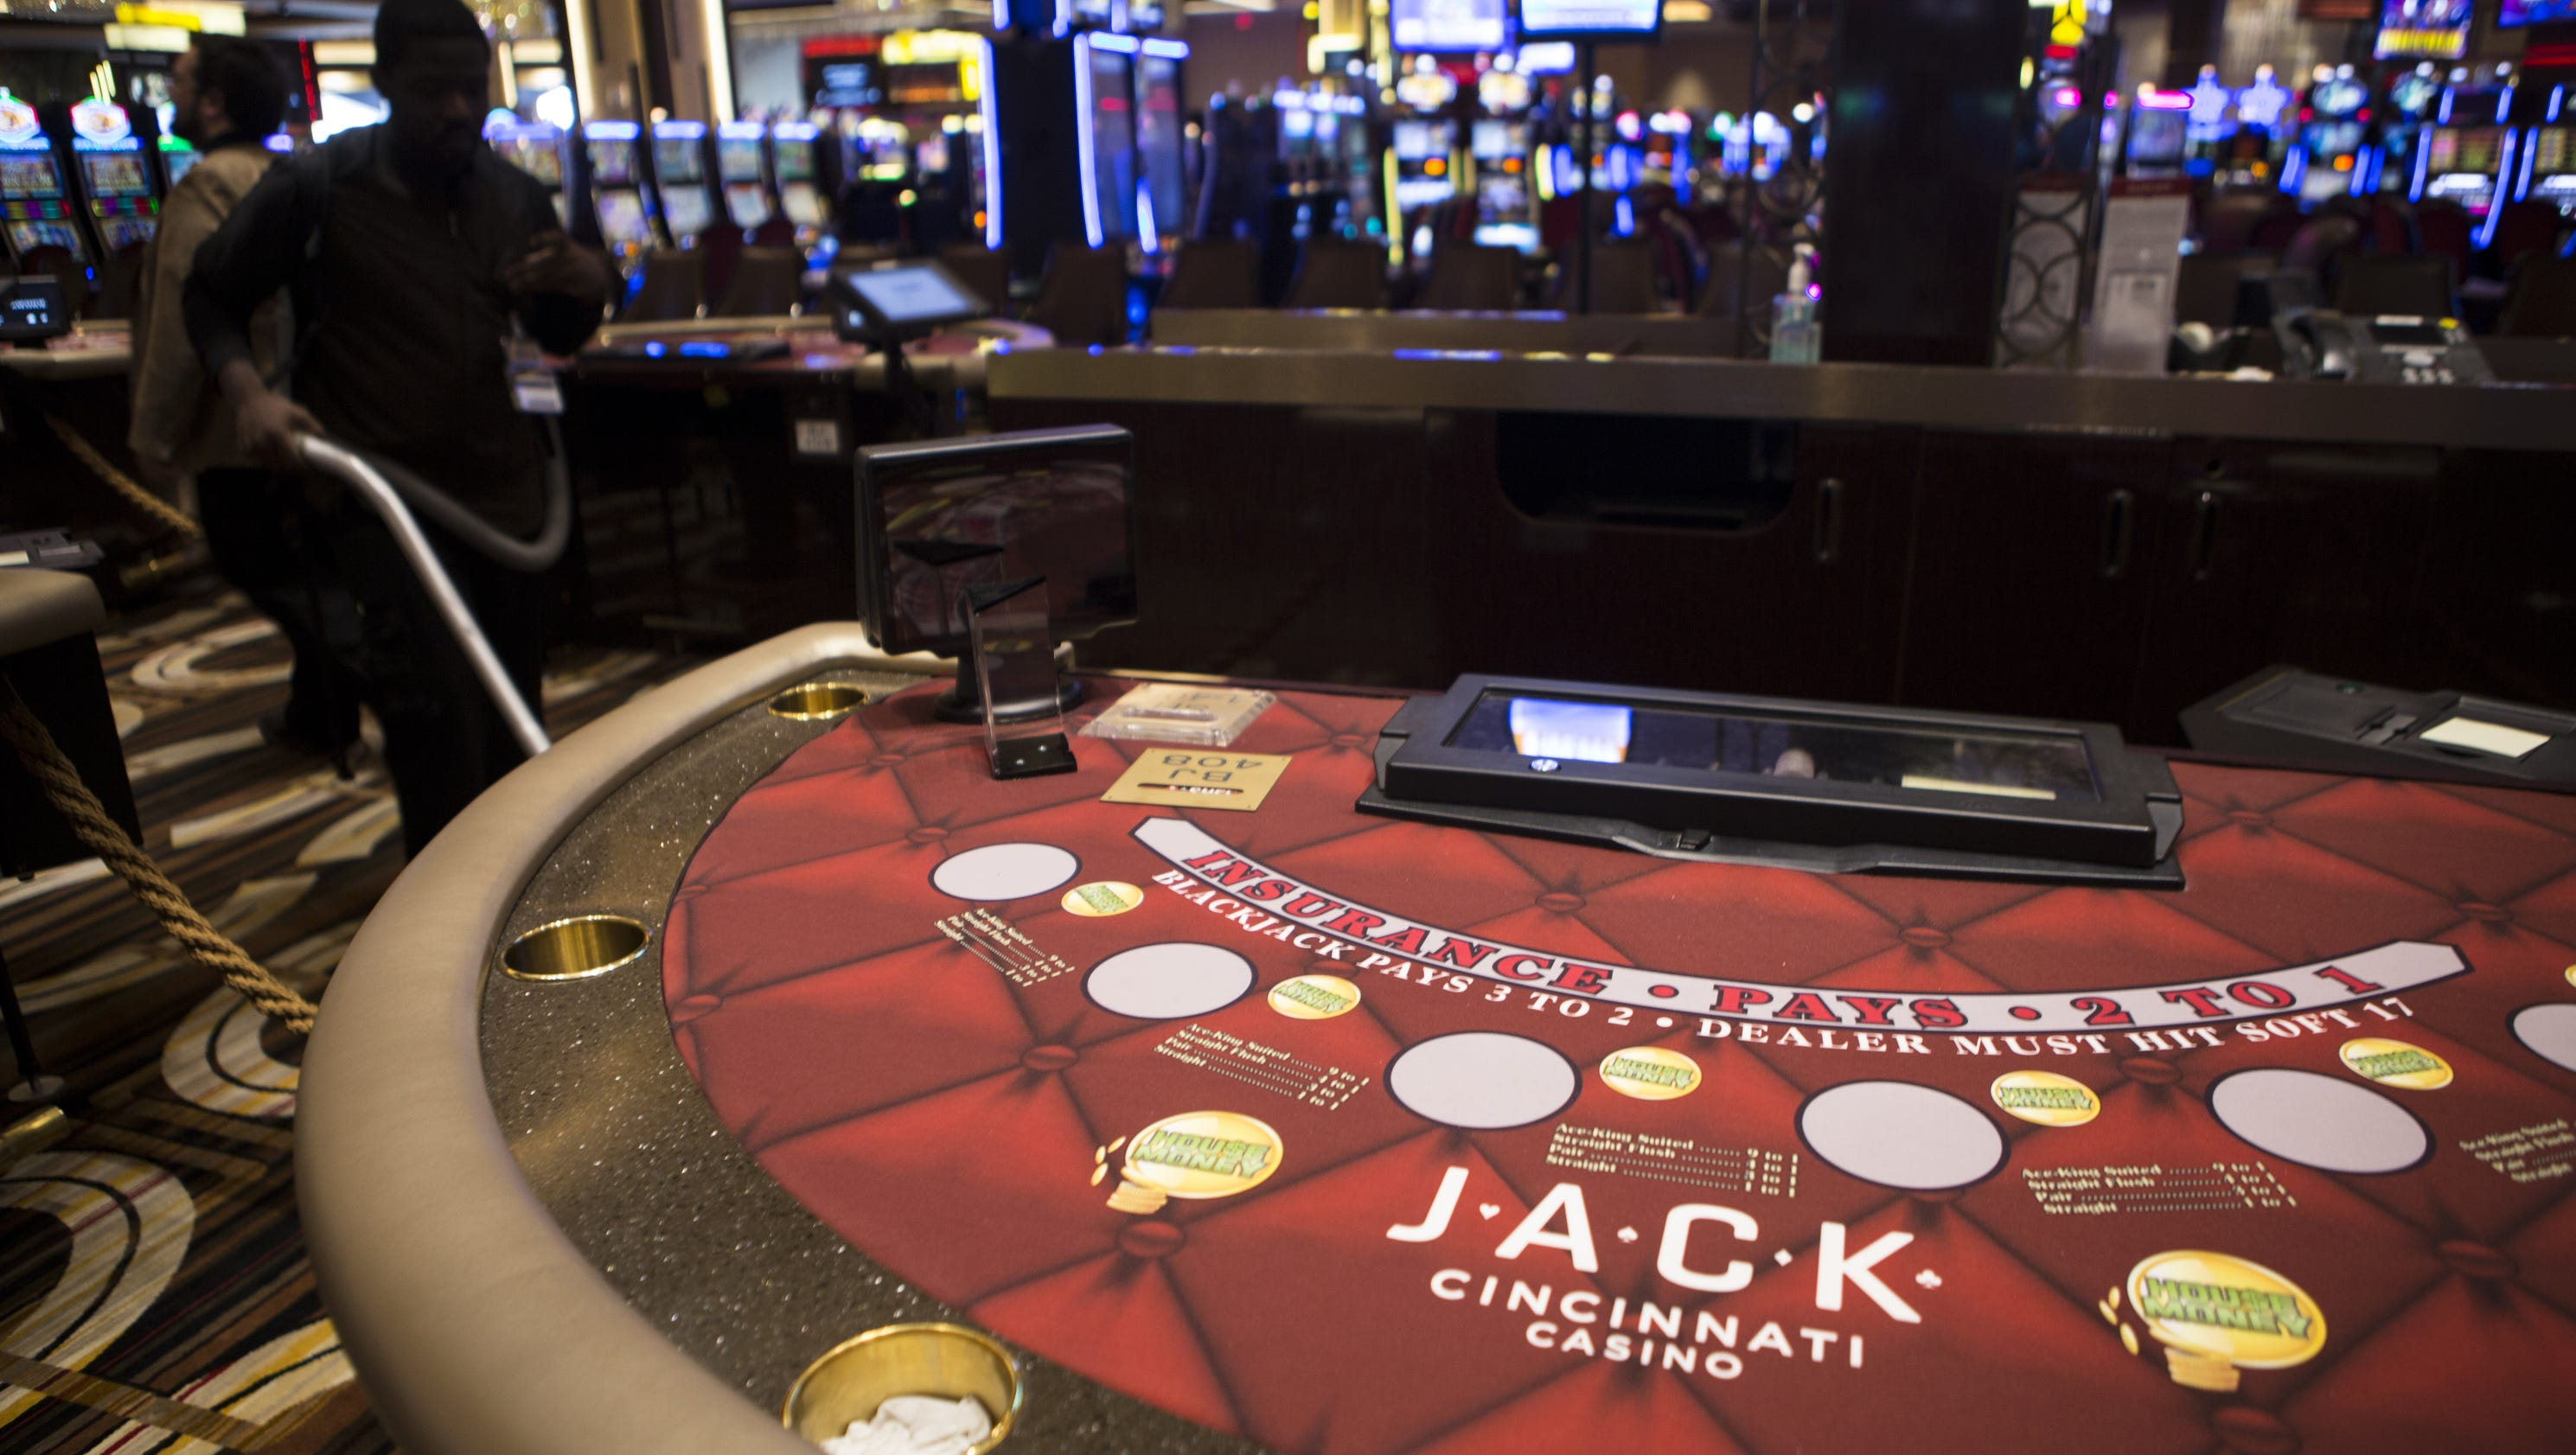 Belterra casino riverboat gambling in sports issue